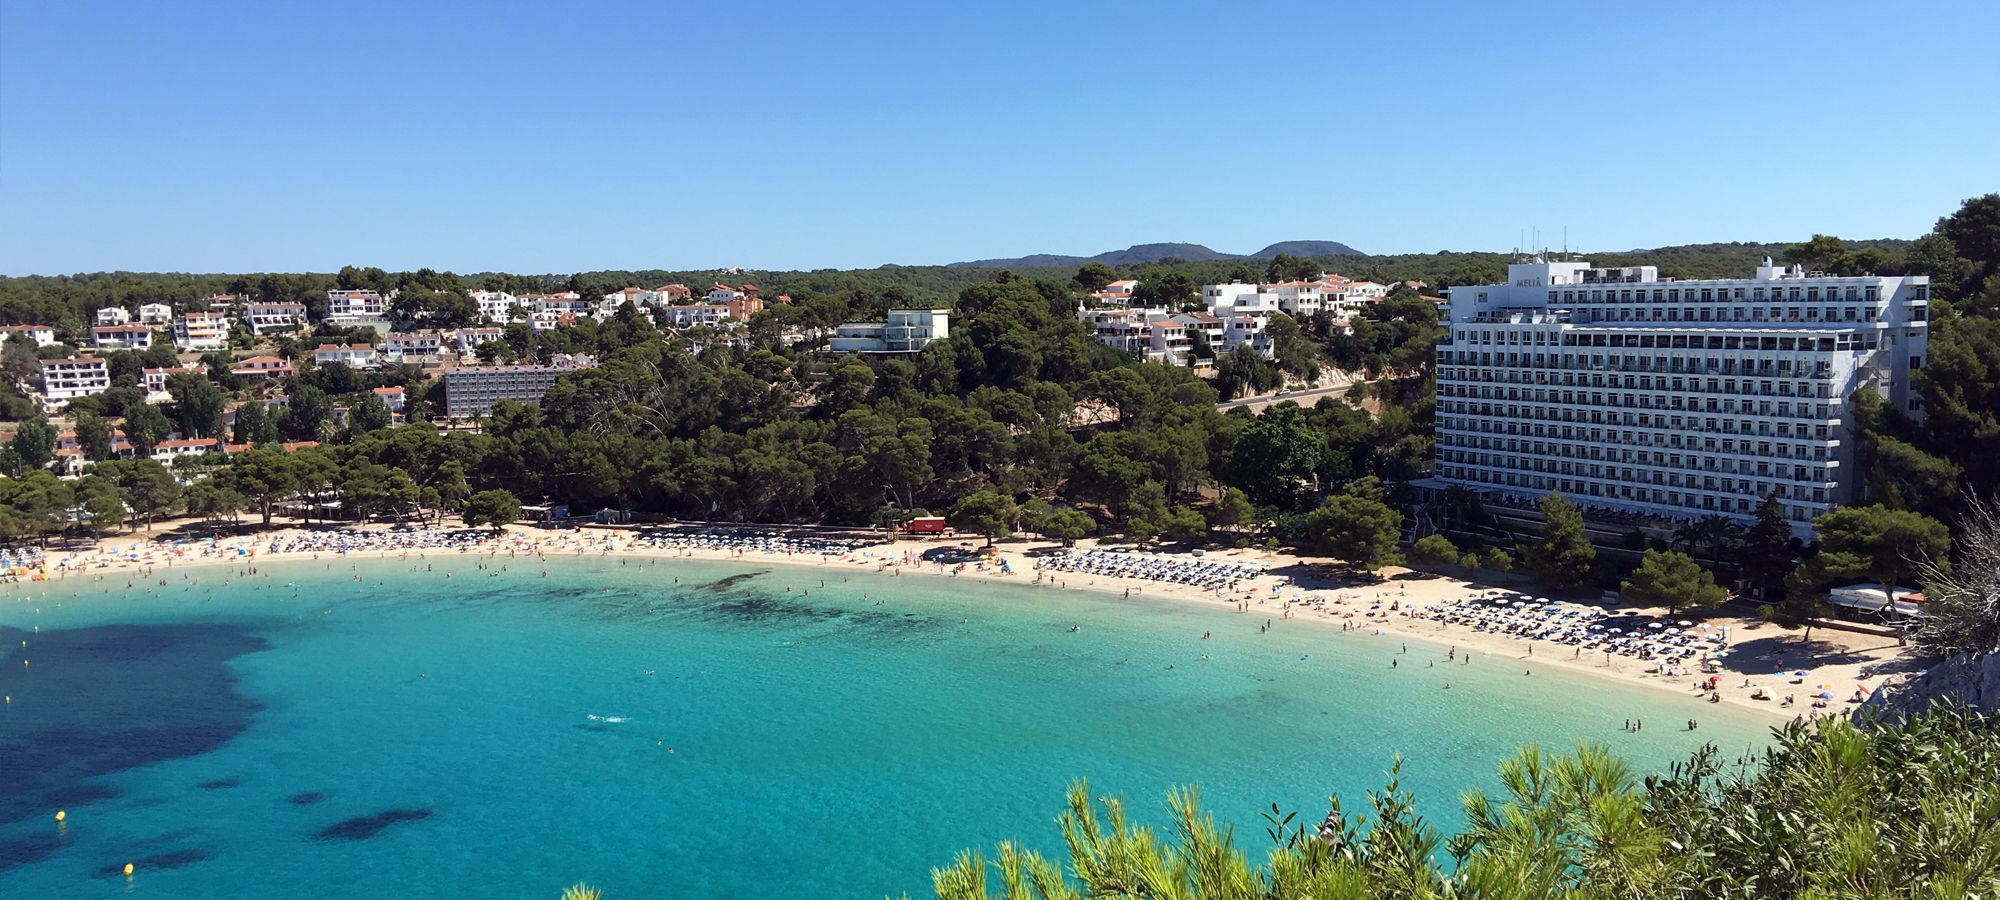 Menorca Resorts - Destinations in Menorca - CalaMenorca.com